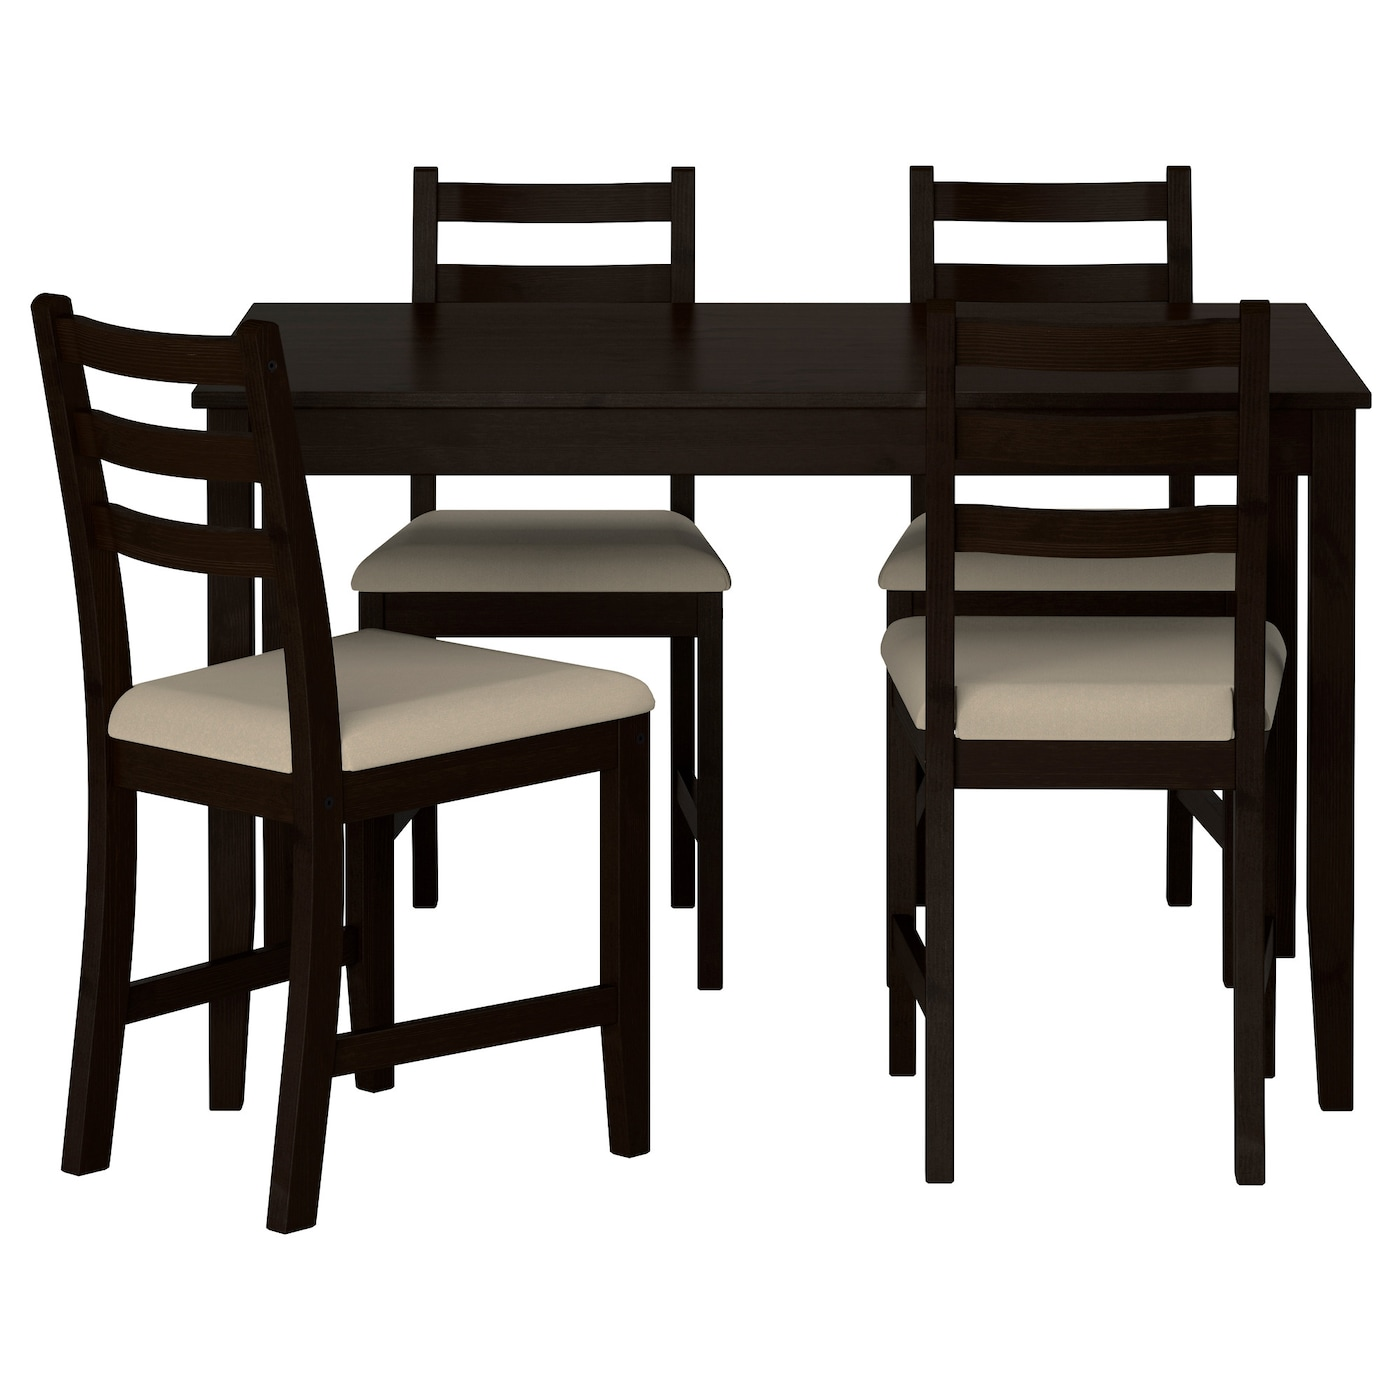 Lerhamn table and 4 chairs black brown ramna beige 118x74 for Small dining table with 4 chairs